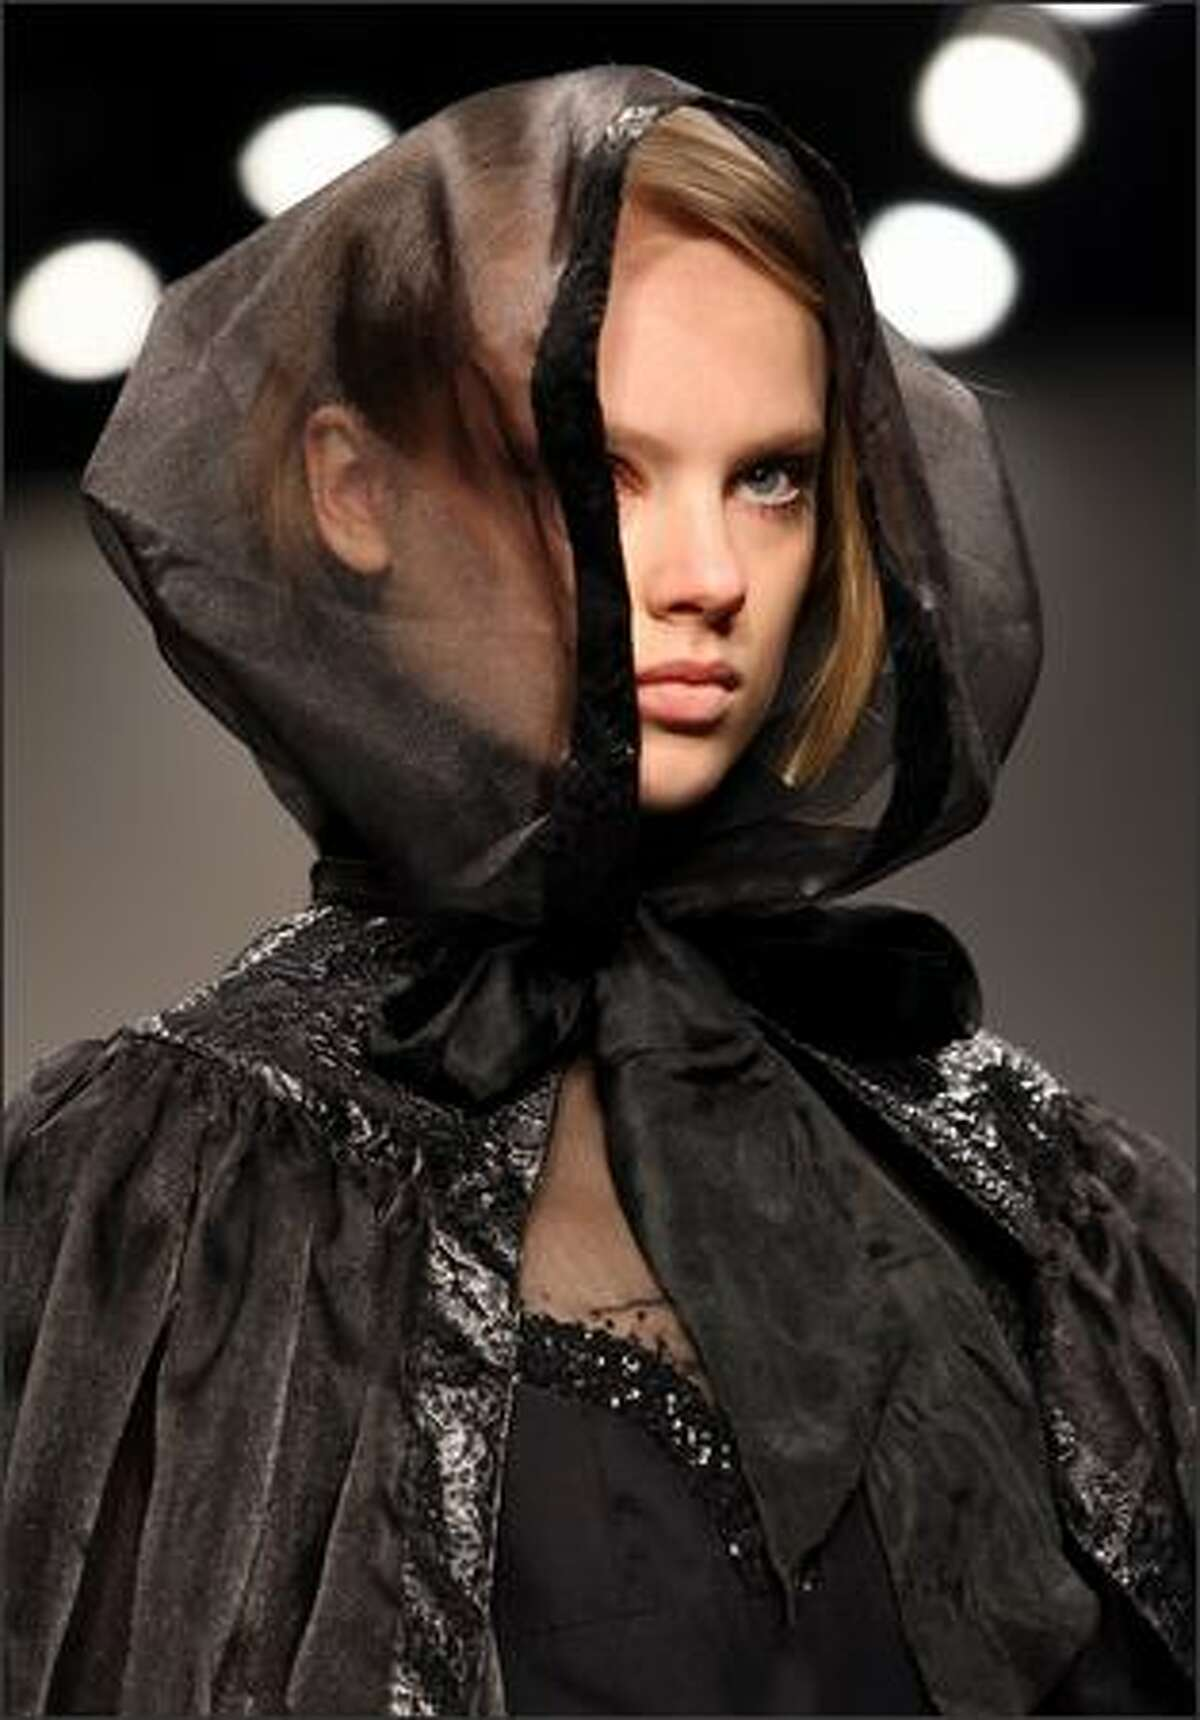 A model walks down the runway during the Bora Asku fall 2008 show at The BFC Tent in London.